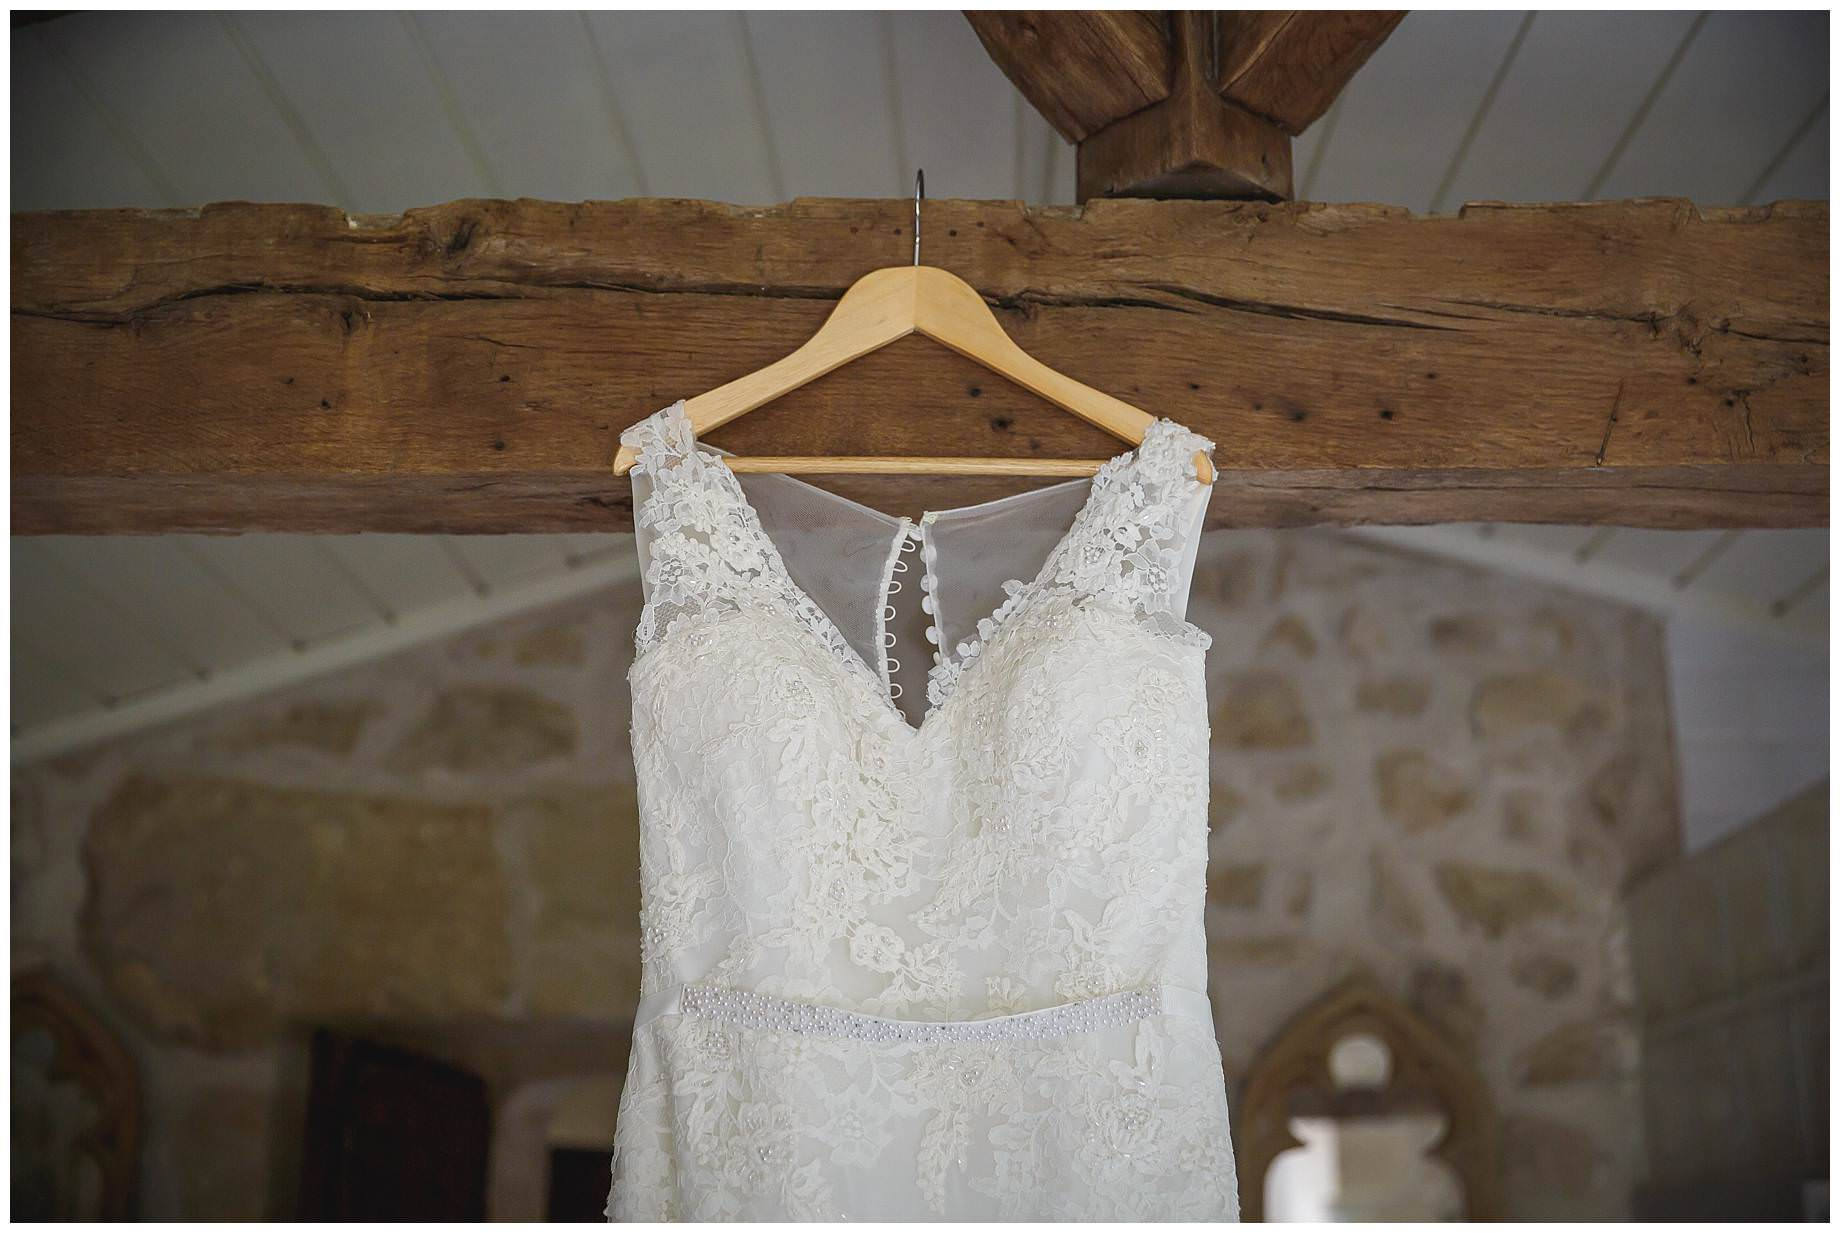 The wedding dress hanging up